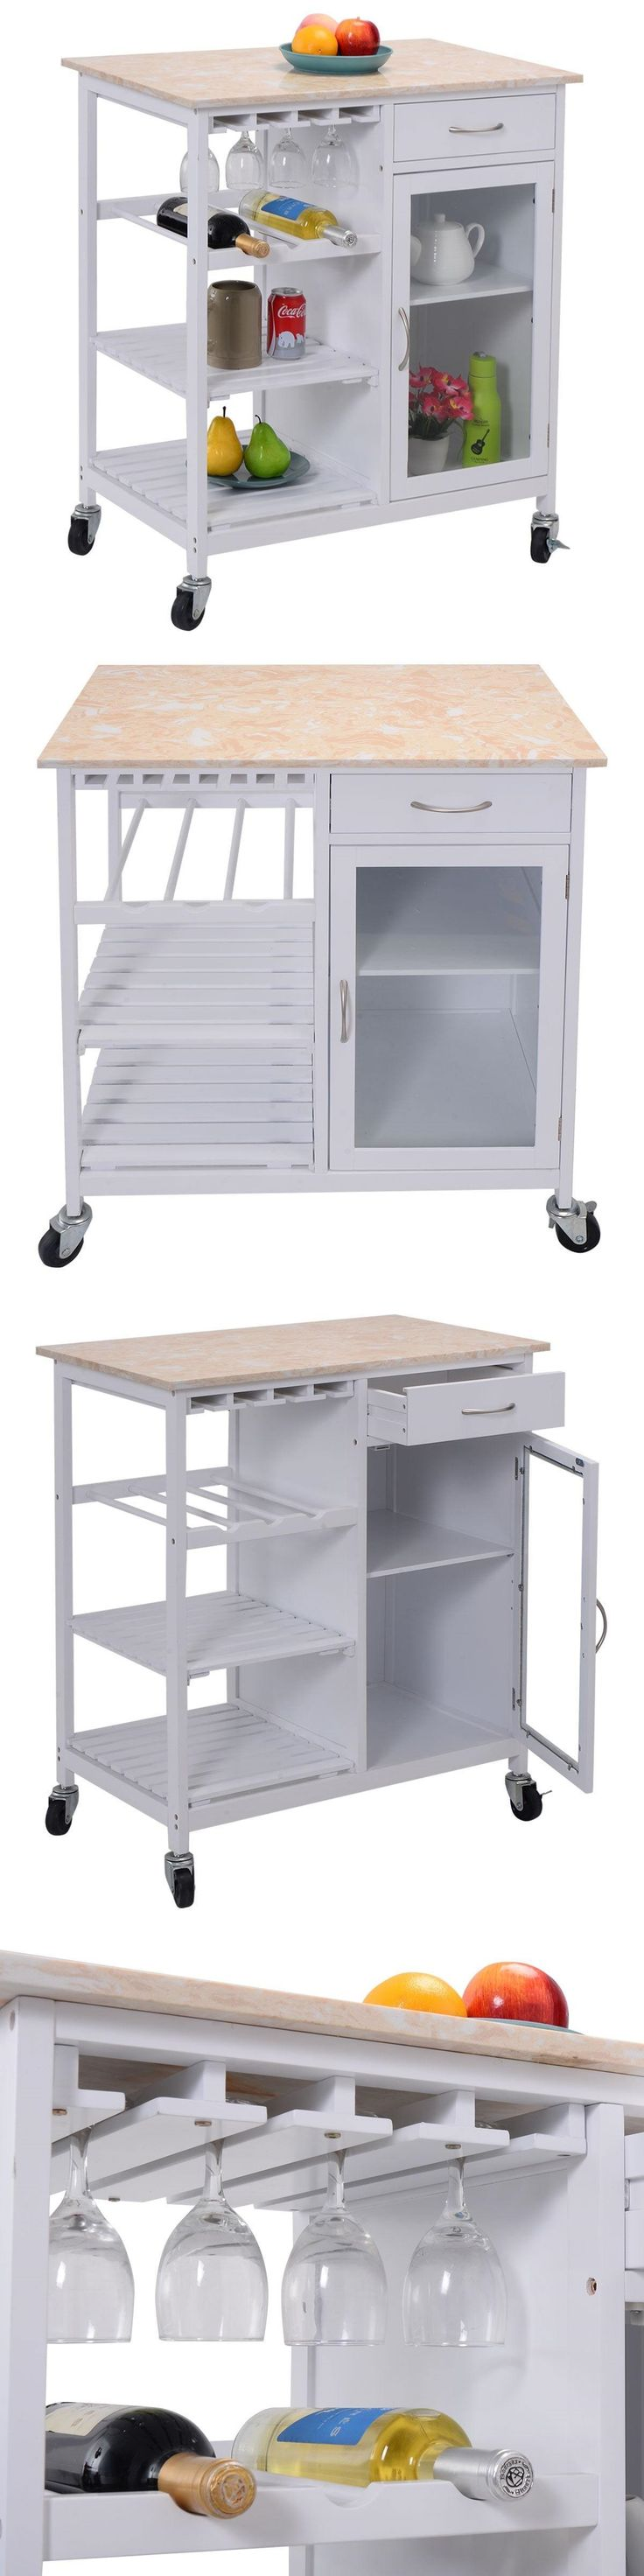 Kitchen Islands Kitchen Carts 115753: Costway Portable Kitchen Island Serving Cart On Wheels Faux Marble Top Cabinet -> BUY IT NOW ONLY: $318.99 on eBay!